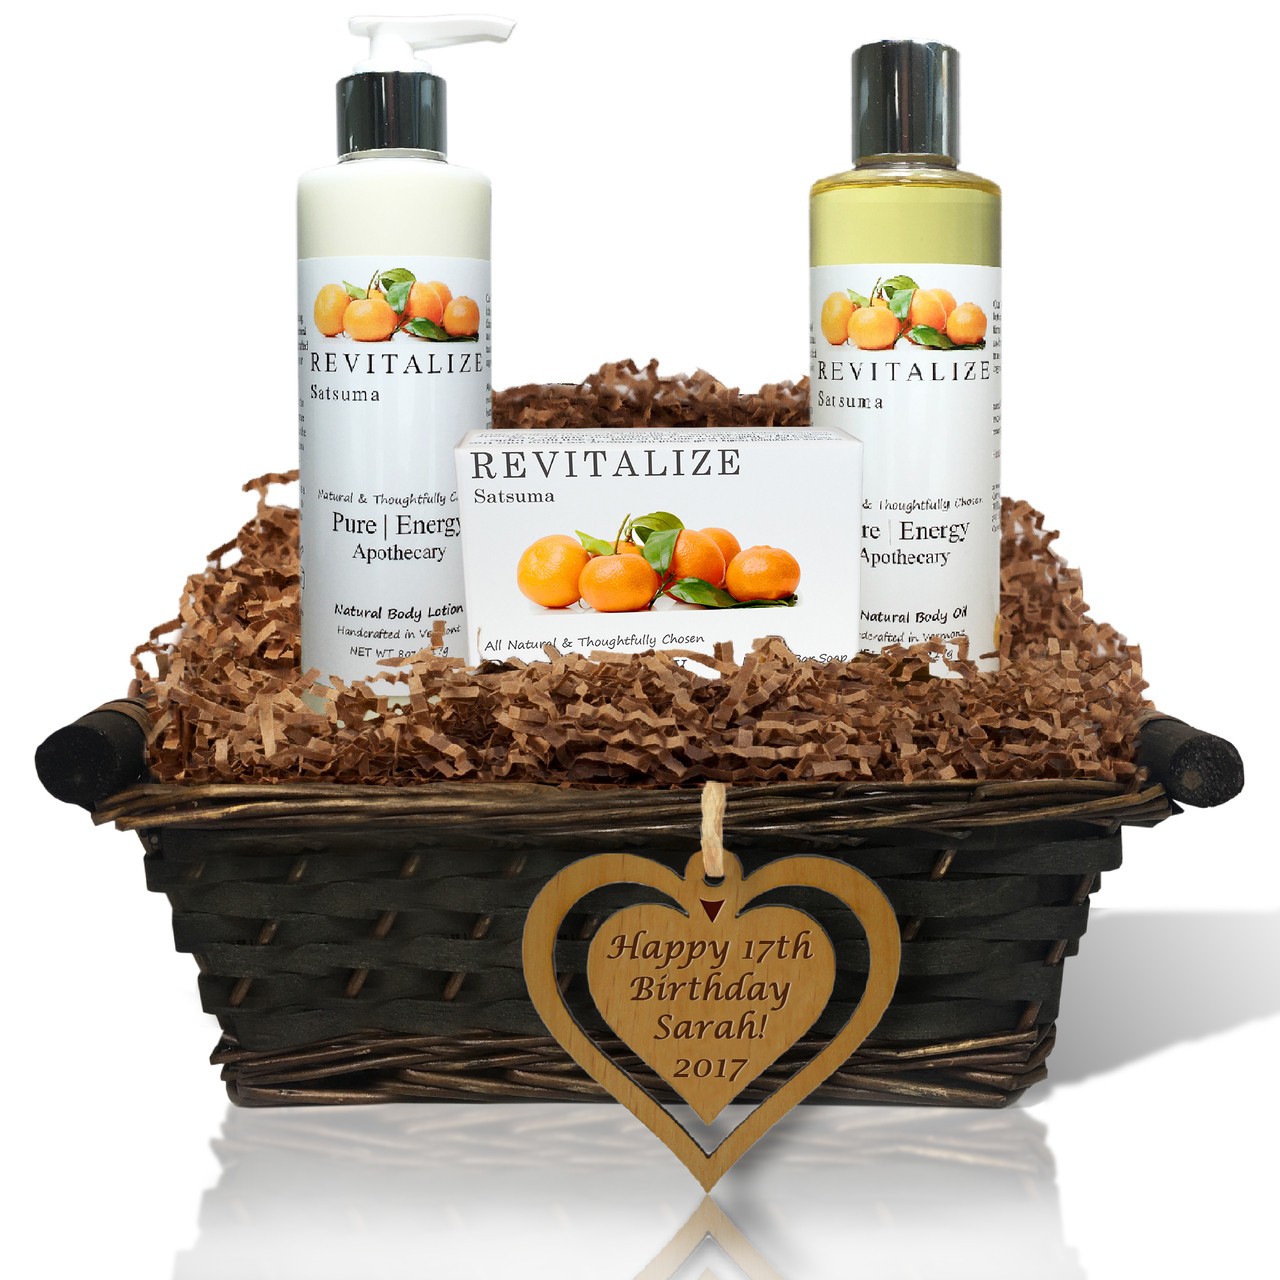 Pure Energy Apothecary Daily Delight Birthday Gift Basket Satsuma